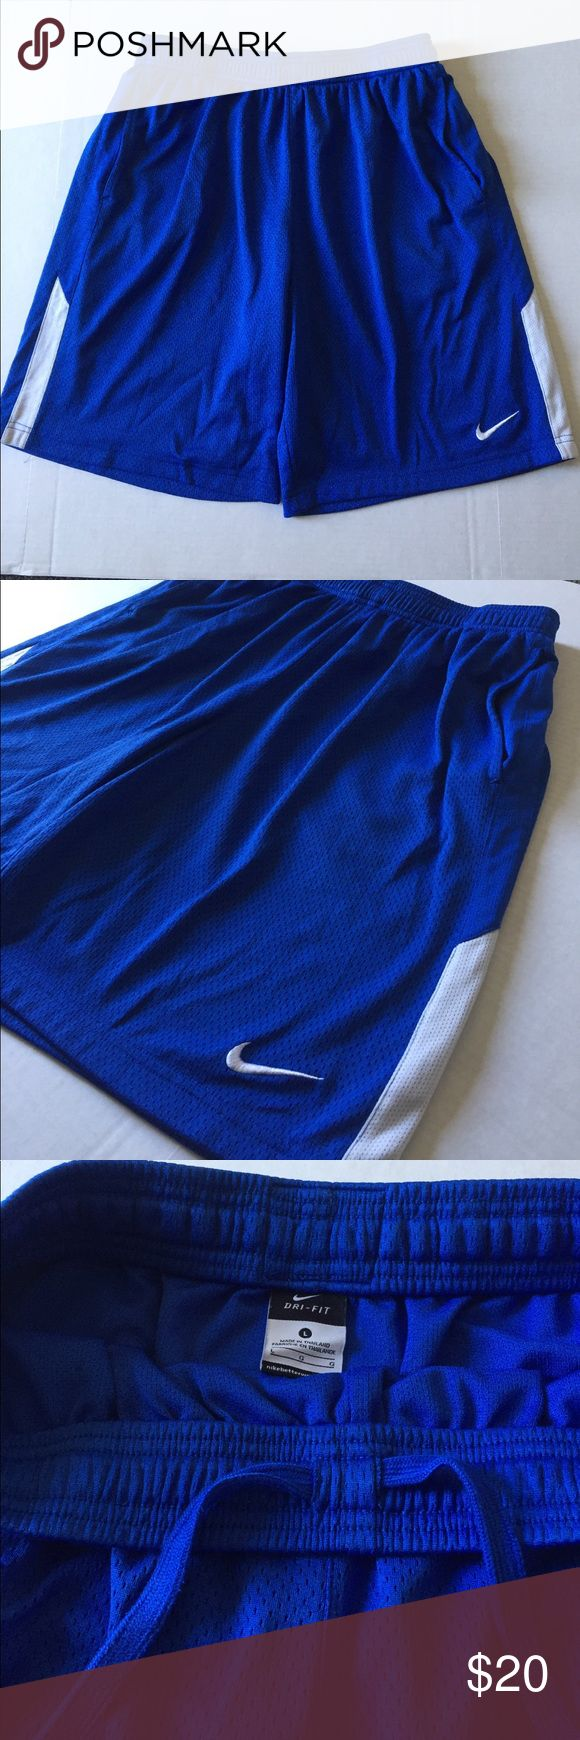 Nike Men's Dri-Fit Athletic Shorts Nike Men's Dri-Fit Athletic Shorts.  Excellent condition!  Royal blue color.  Size Large.  Side pockets.  Drawstring waist.  100% polyester.  Double layer of mesh material. Nike Shorts Athletic